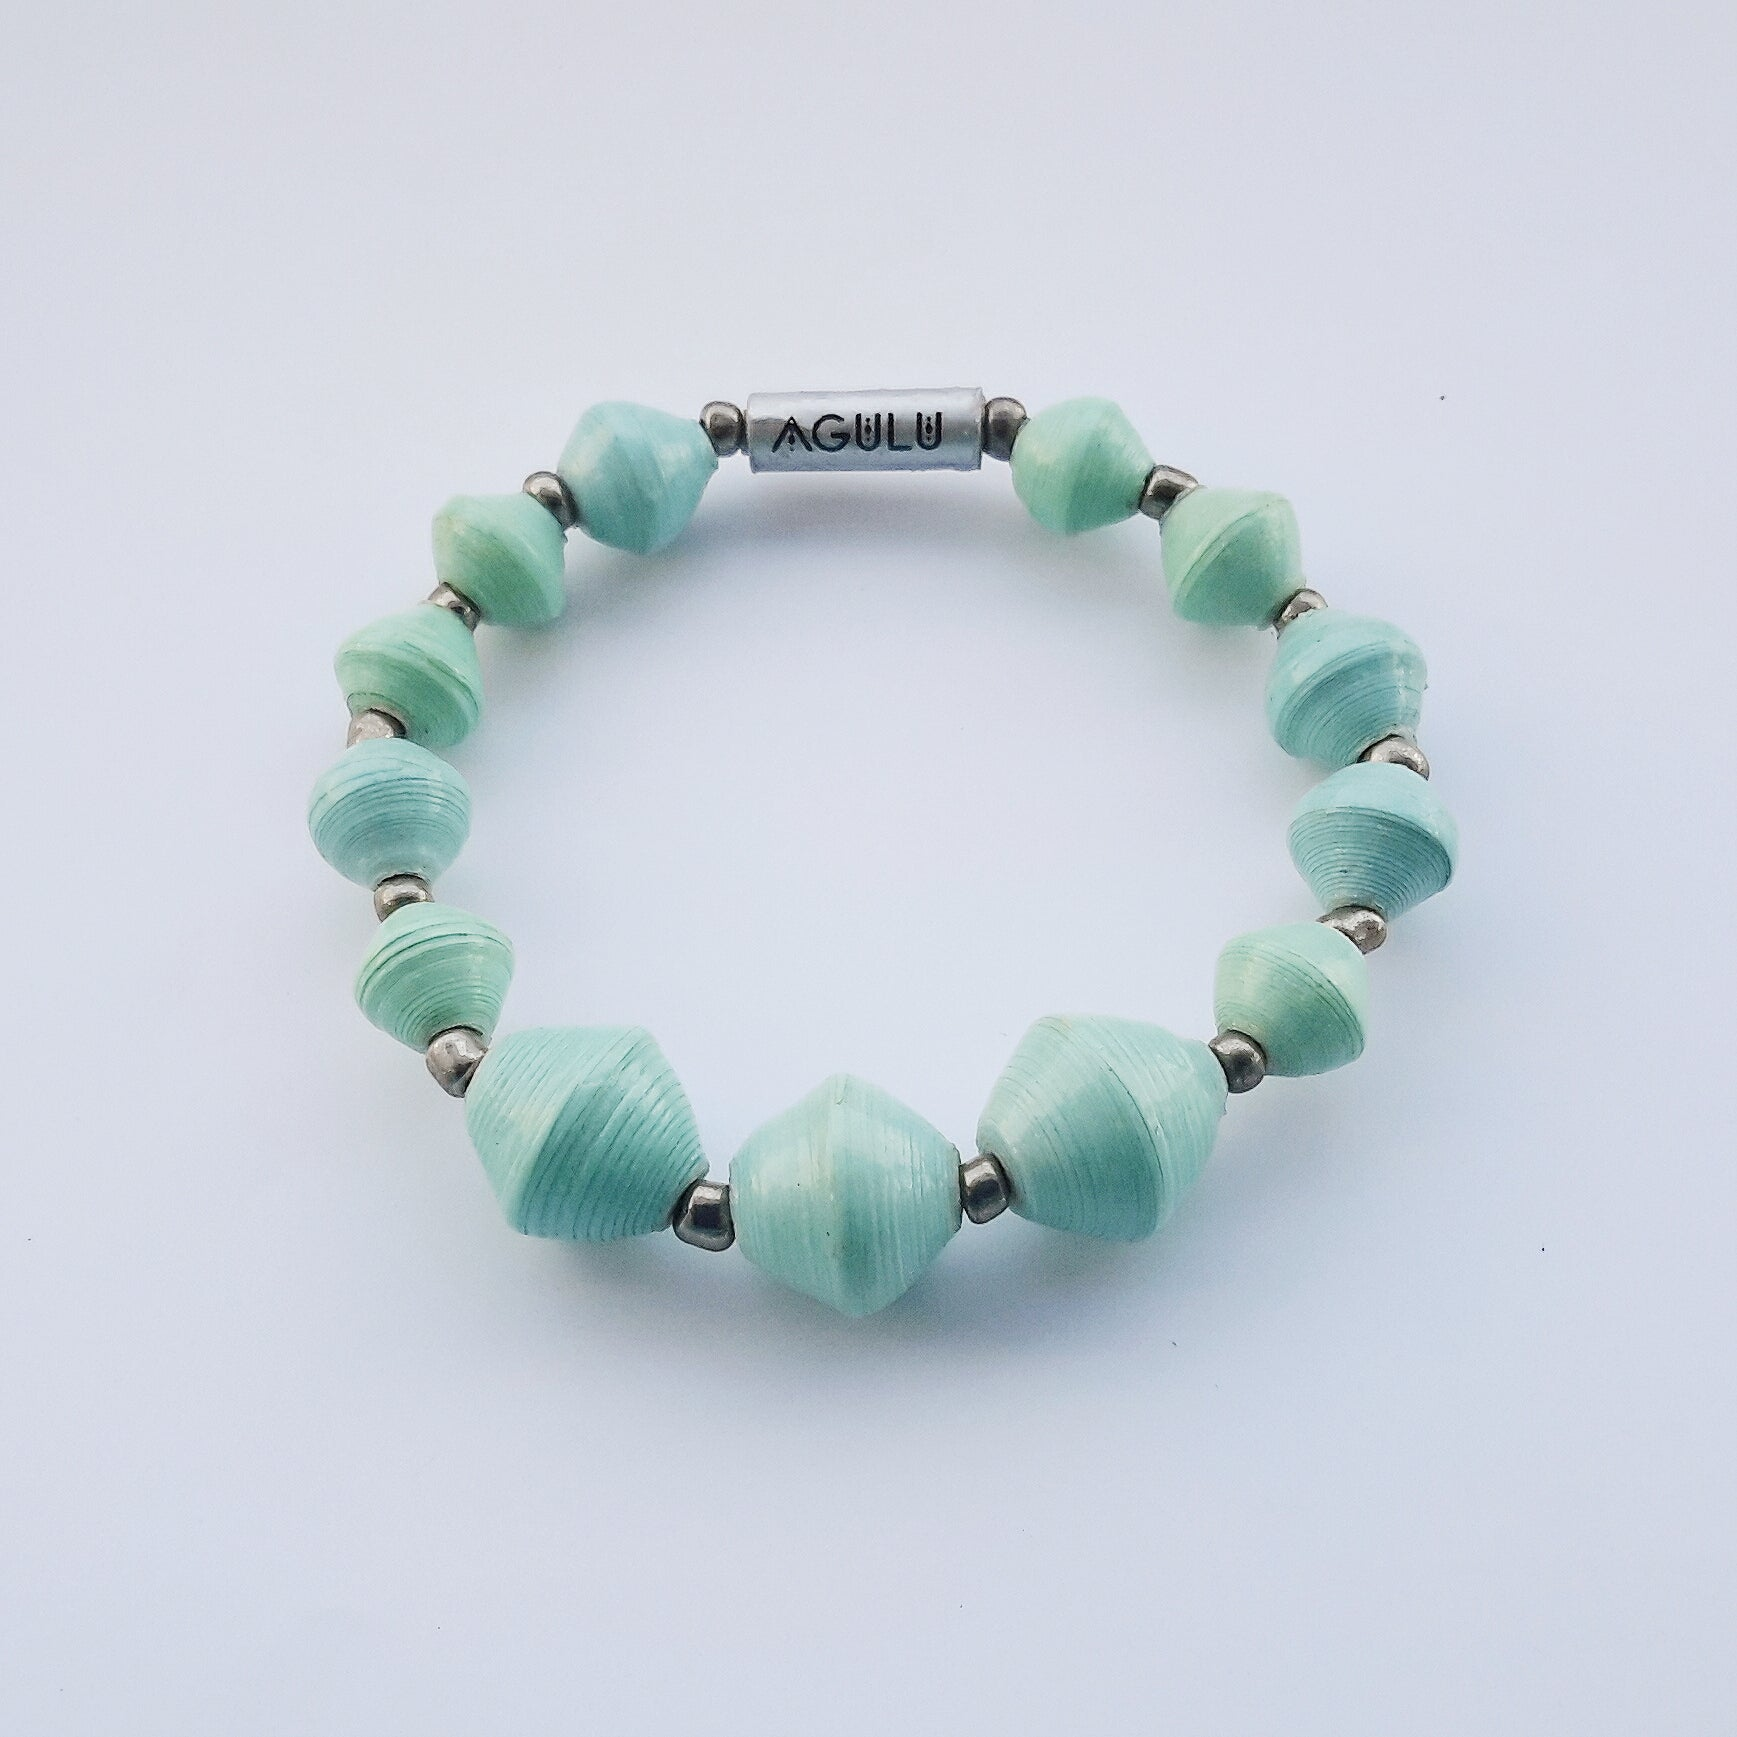 Aquamarine/turquoise hand made ethical design paper bead bracelet made out of recycled paper in Uganda by principles of fair trade, ethical and sustainable fashion, empowering women of post war area, by Finnish / Scandinavian brand, Agulu Paper Beads. Eettinen vedenvihreä/turkoosi käsintehty design rannekoru, joka on tehty kierrätyspaperista reilun kaupan periaattein työllistämällä Ugandalaisia nasia.